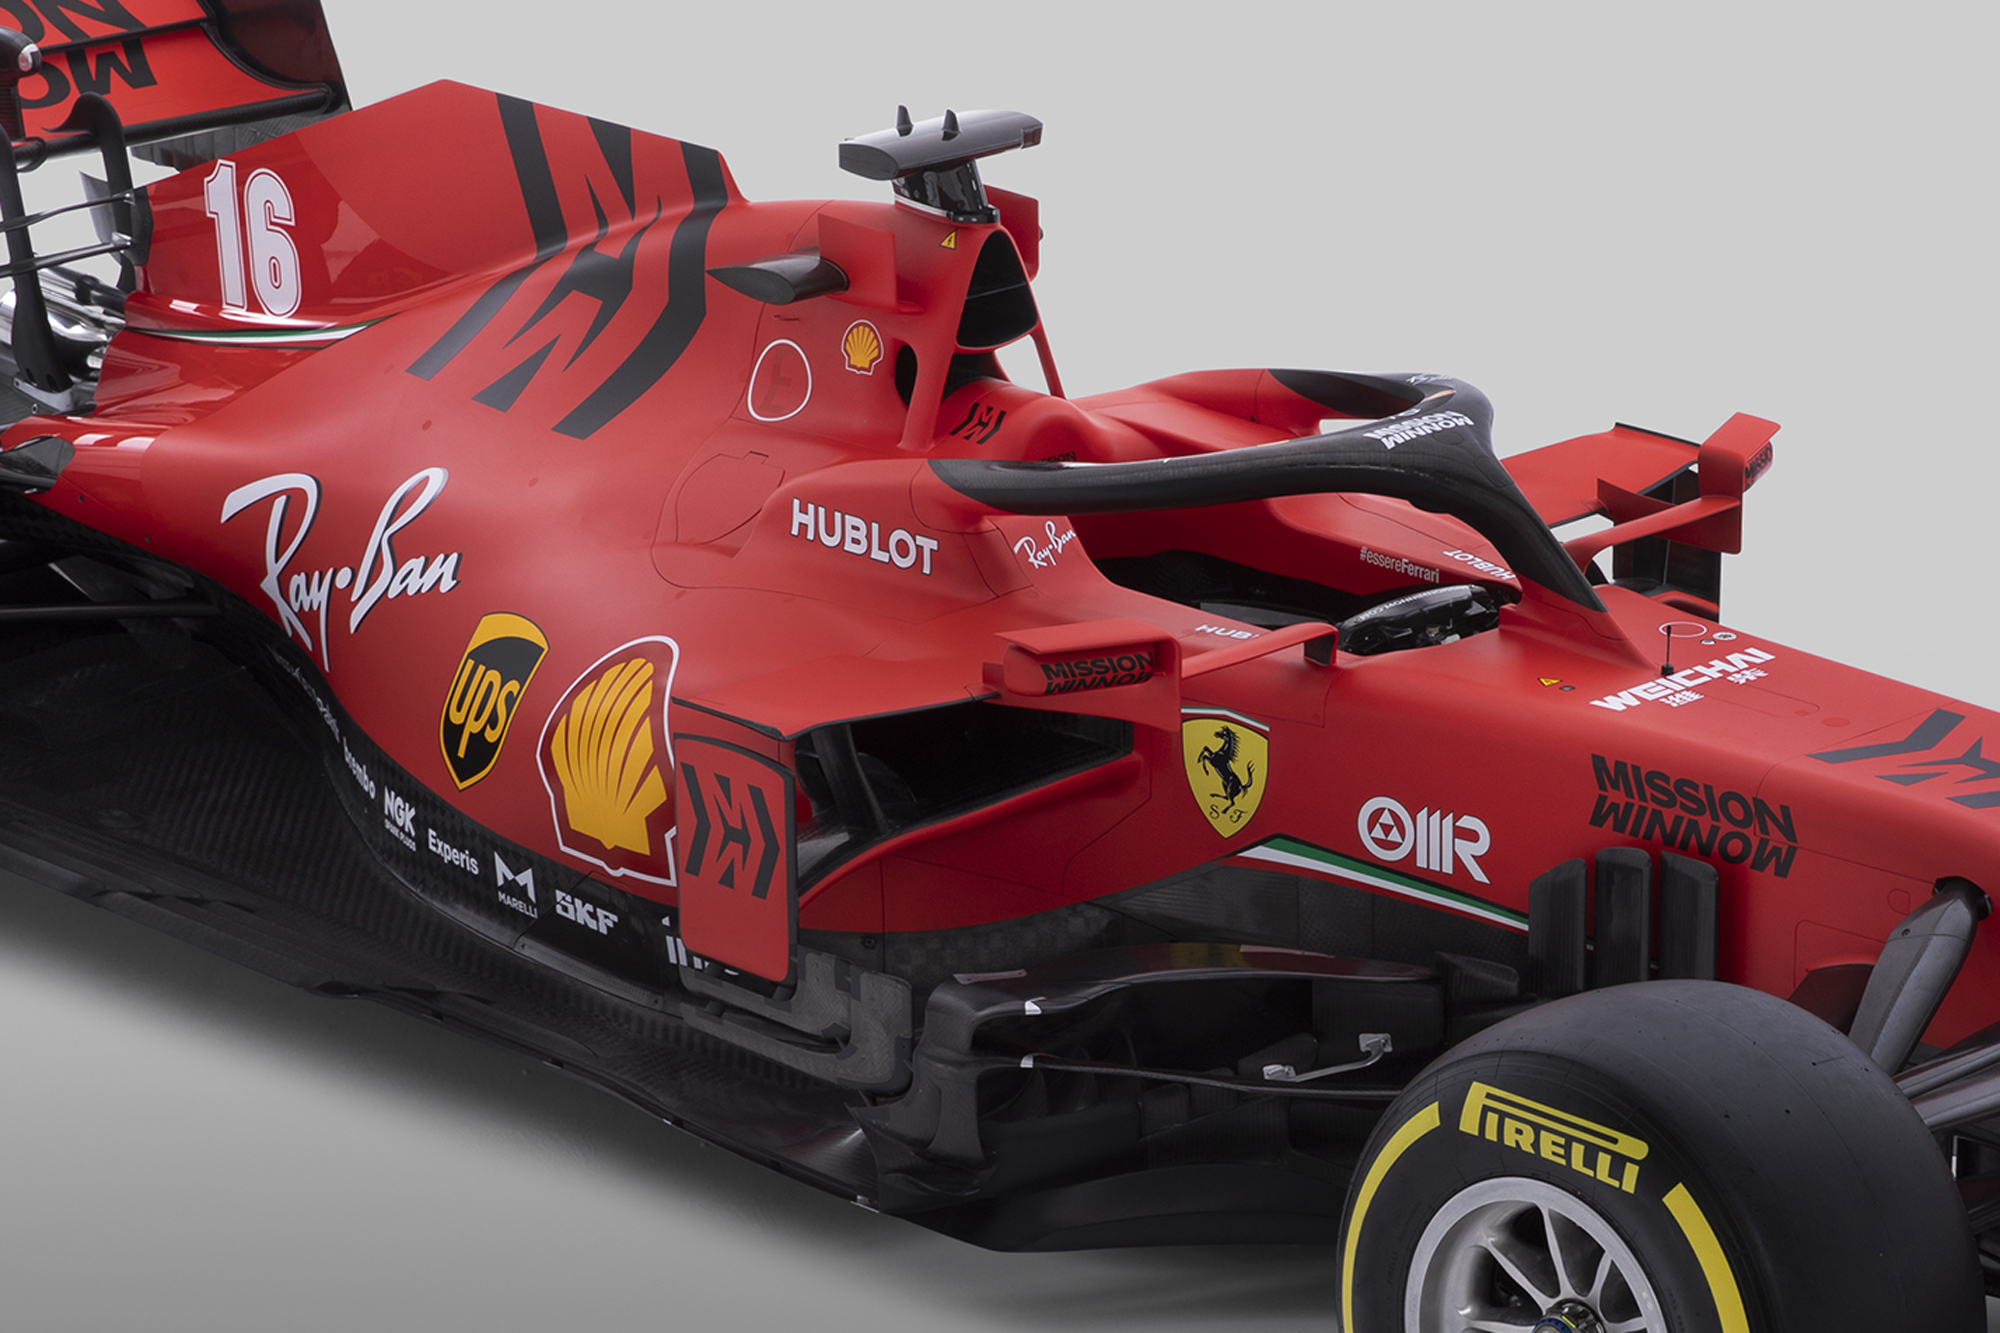 Gary Anderson S Verdict On Ferrari S 2020 F1 Car The Race